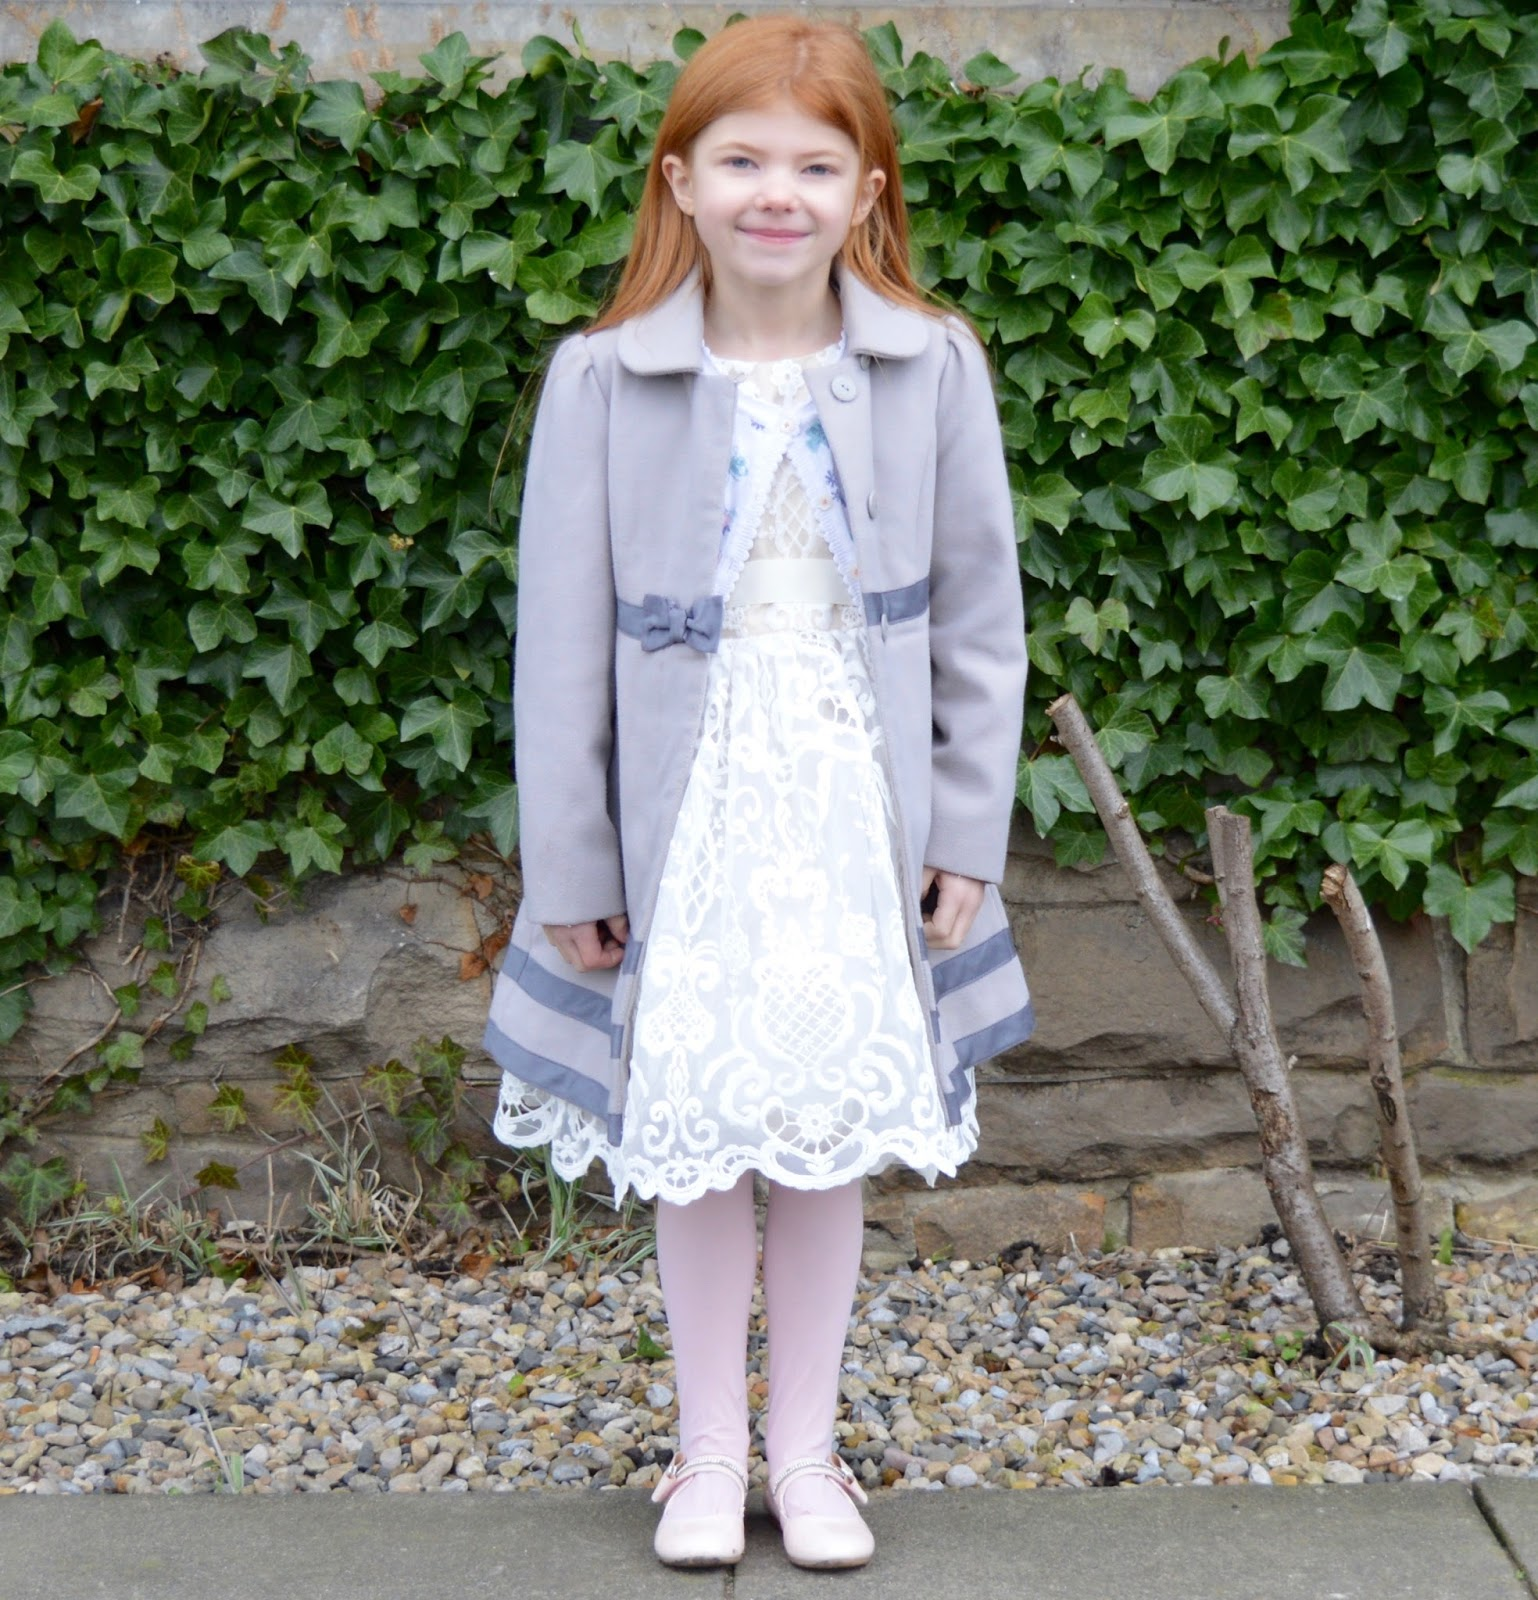 A Girl's Christmas Party Dress from Roco Clothing